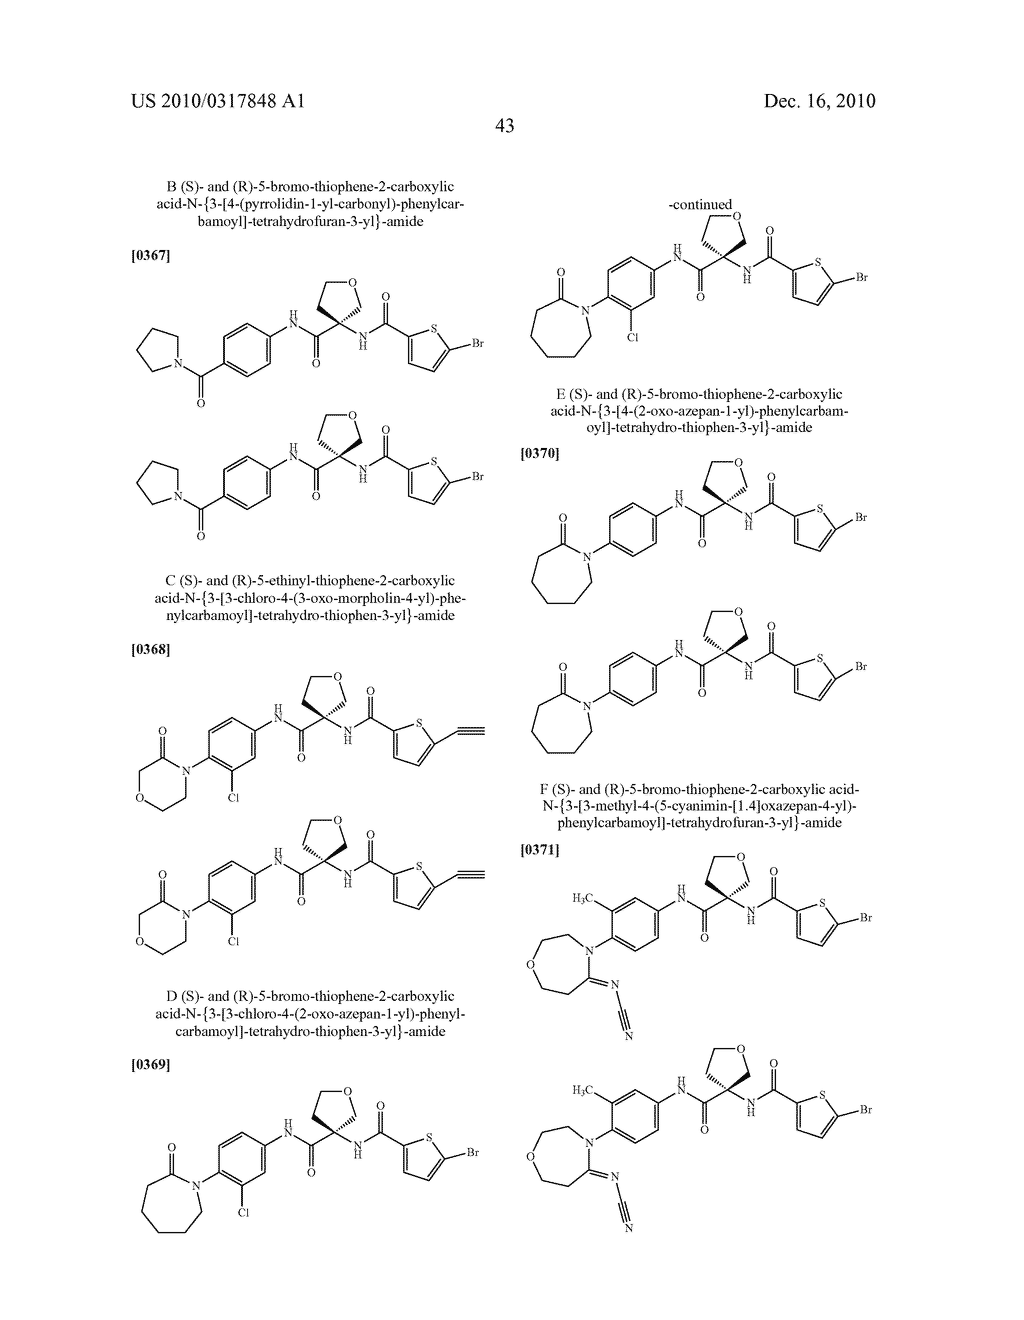 PROCESS FOR THE SYNTHESIS OF DERIVATIVES OF 3-AMINO-TETRAHYDROFURAN-3-CARBOXYLIC ACID AND USE THEREOF AS MEDICAMENTS - diagram, schematic, and image 48